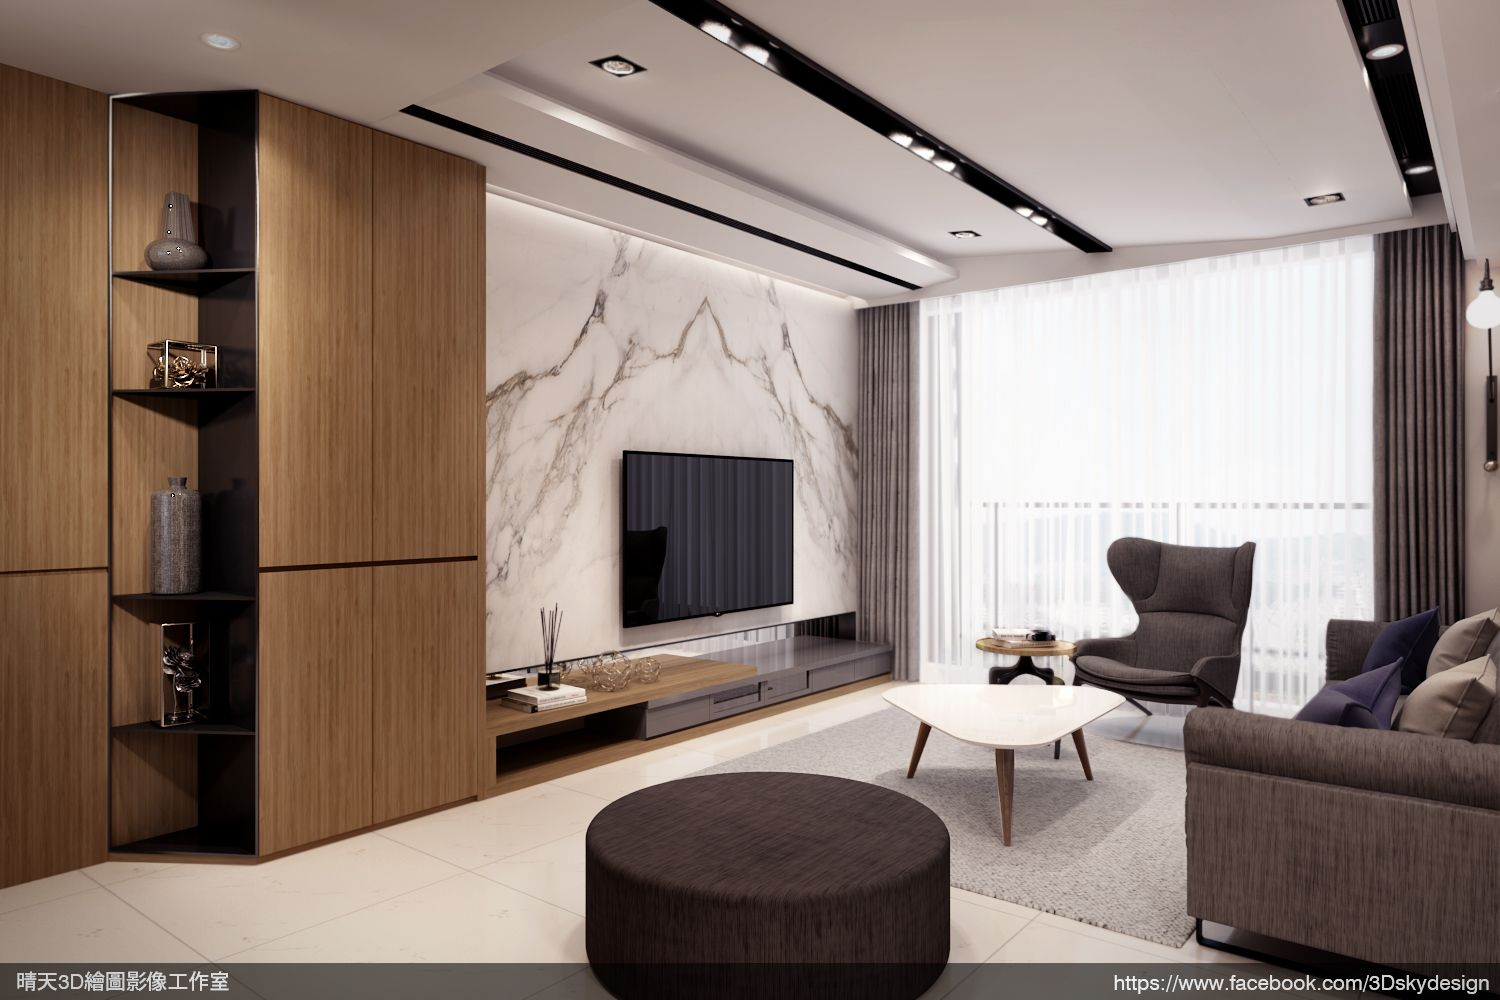 Interior 3d Rendering Perspective Computer Graphic 3dsmax Vray